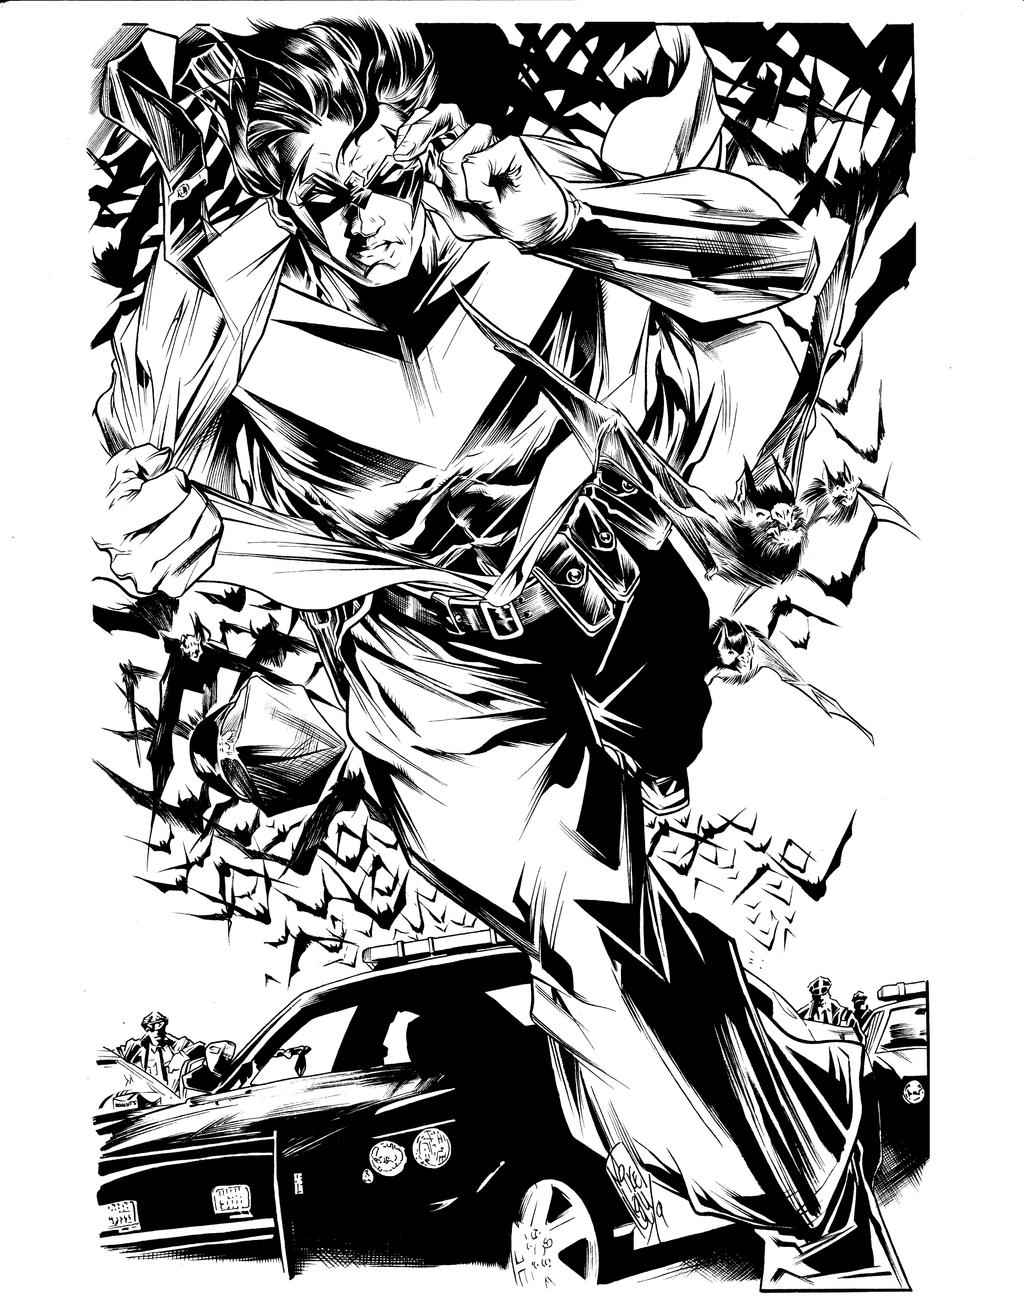 Mike Lilly Nightwing inks